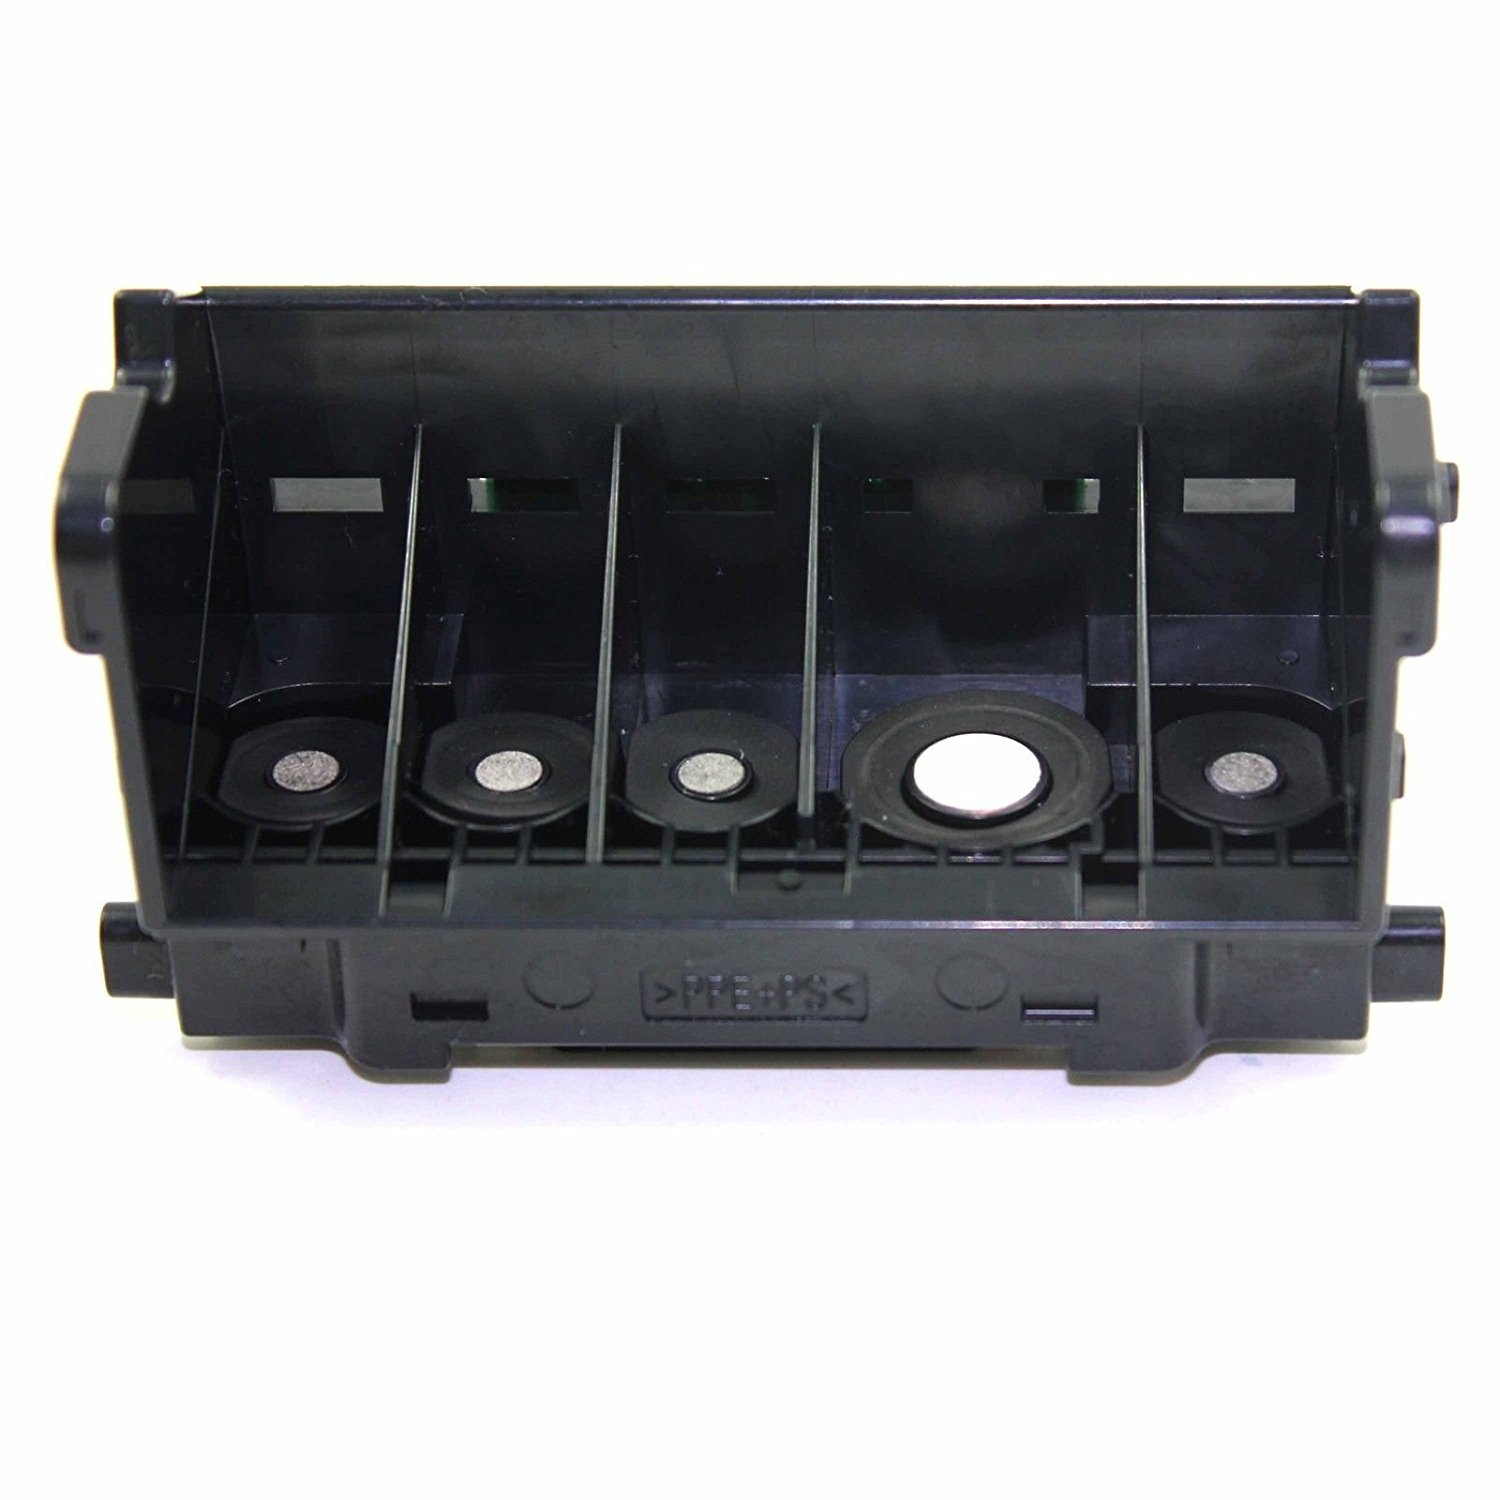 New QY6-0073 Printhead Printer Head Replacement Parts For Ca non IP3600 MP560 MP620 MX860 MX870 MG5140 iP3680 MP540 MP568 MX868 MG5180